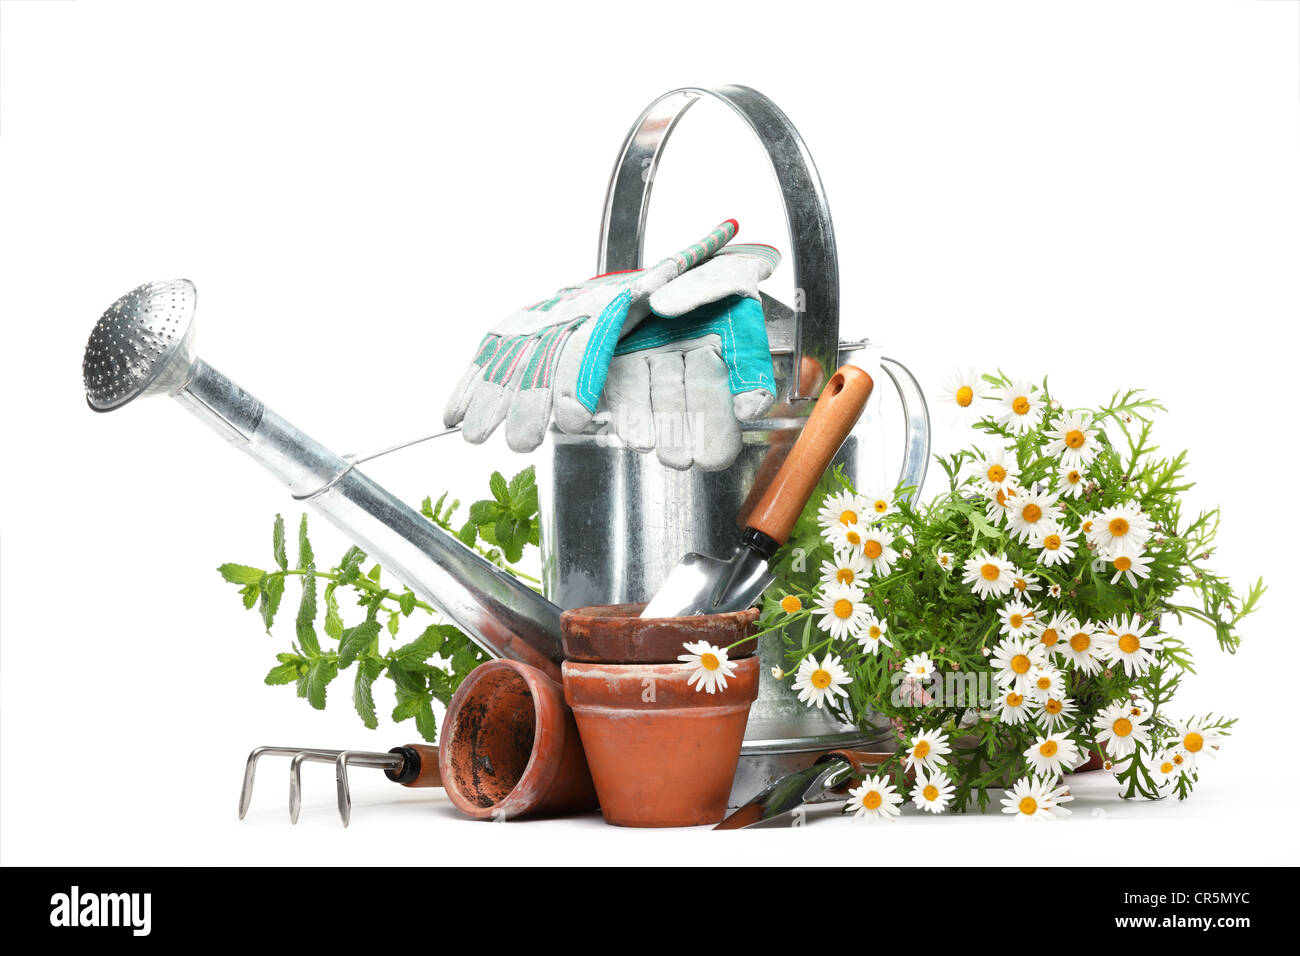 Gardening tools and flowers isolated on white. Stock Photo